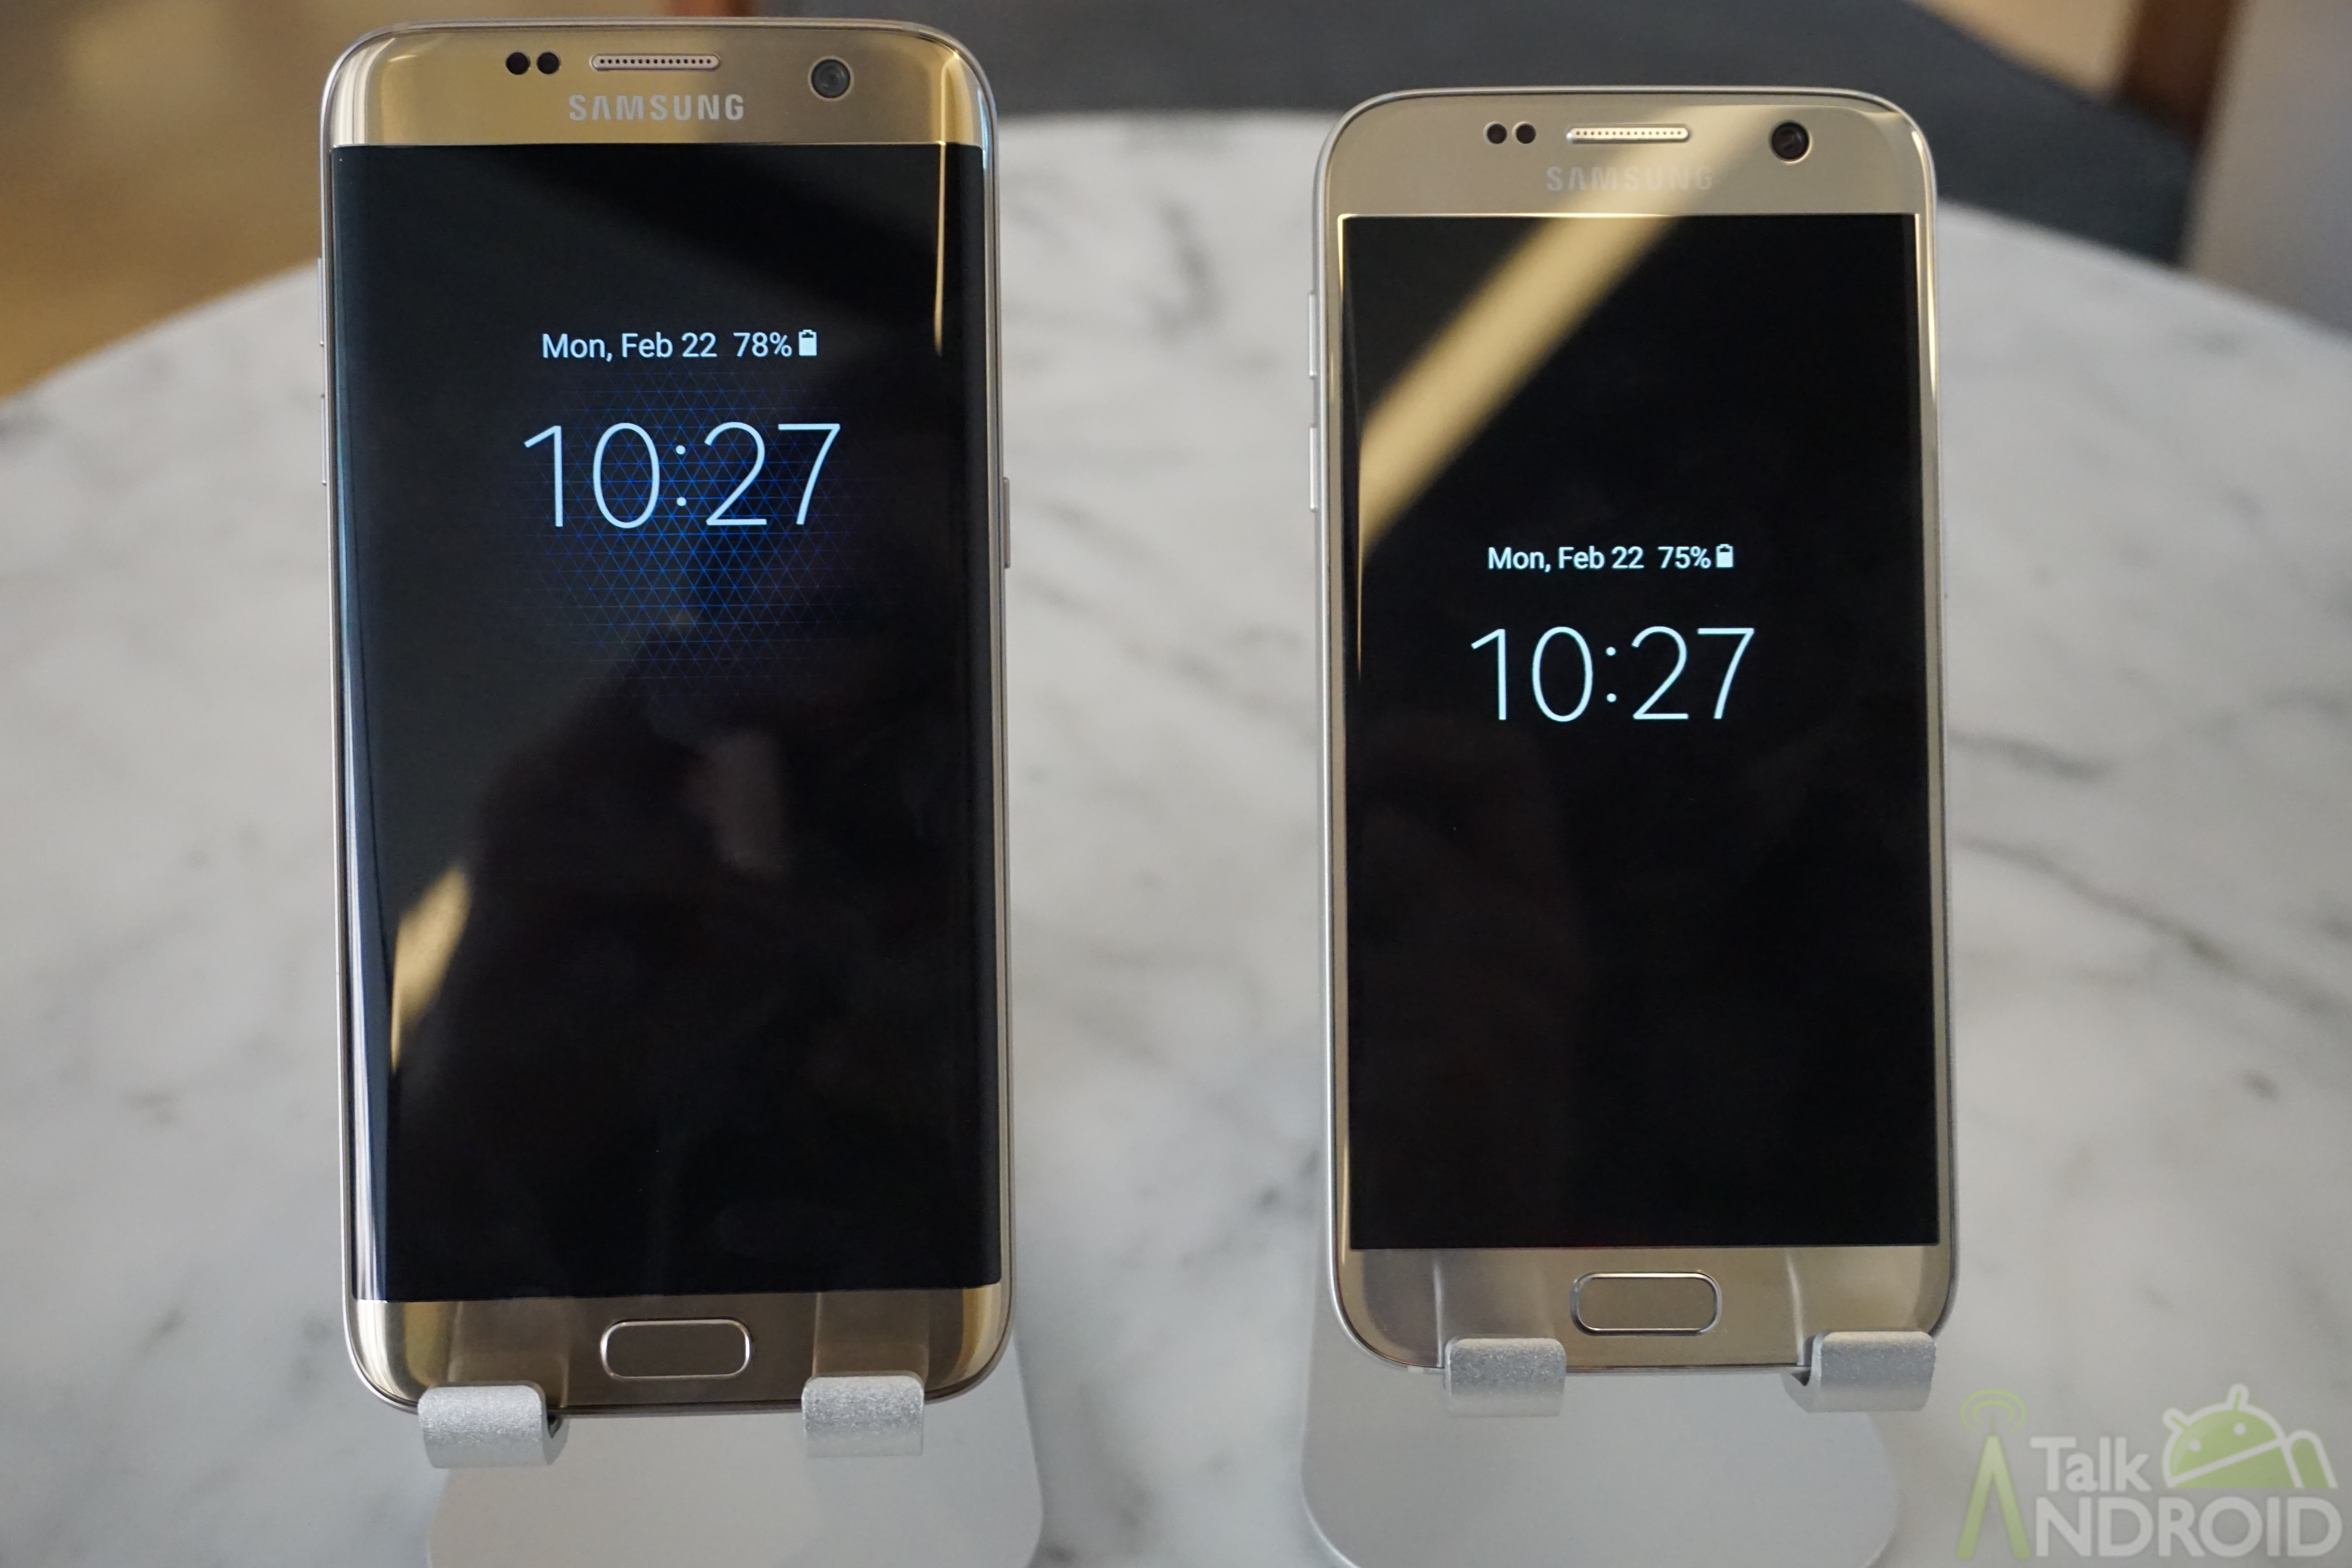 Setting up the always-on display on the Galaxy S7 and S7 Edge |